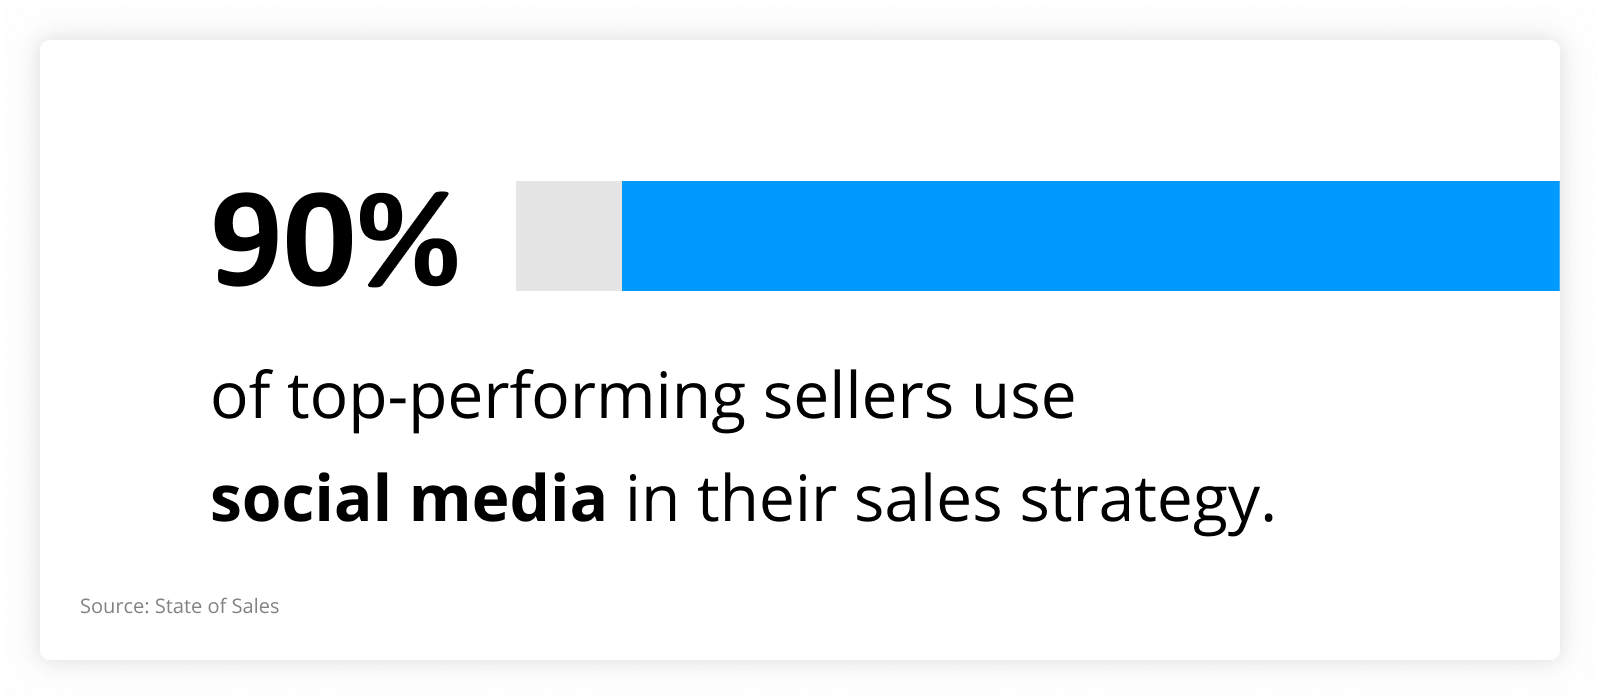 graph showing that 90% of top-performing sellers use social media in their sales strategy.